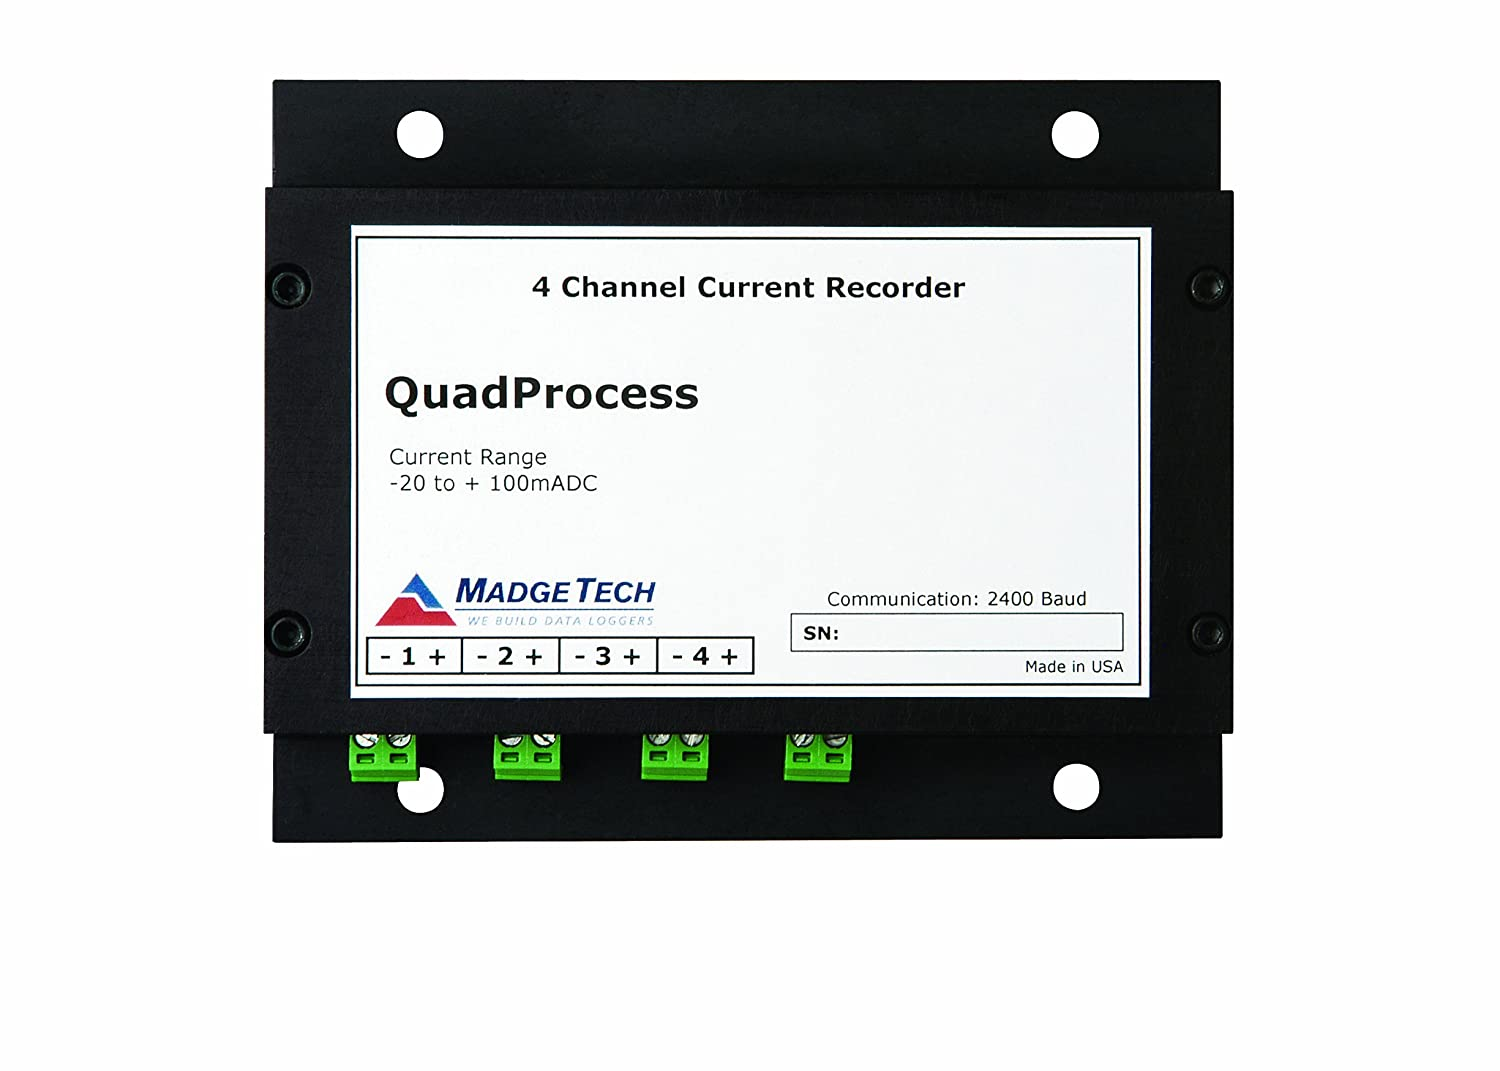 MadgeTech QuadProcess 1mA CERT Low Level DC Current Data Logger 4 Channel ± 1.5mA Measurement Range 0.05A Current Resolution with NIST Certificate